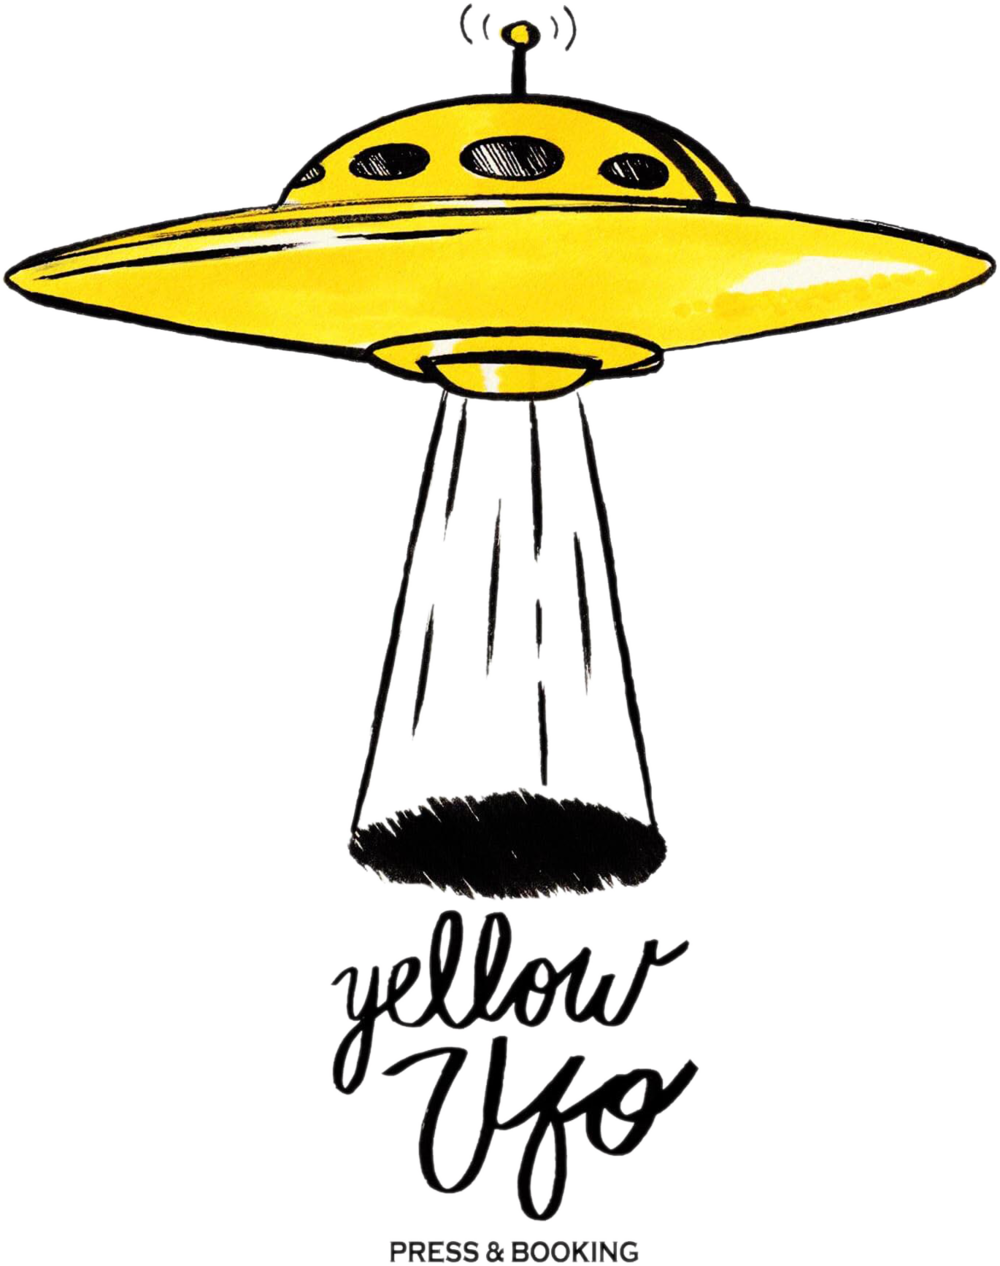 yellow ufo final transparent.png